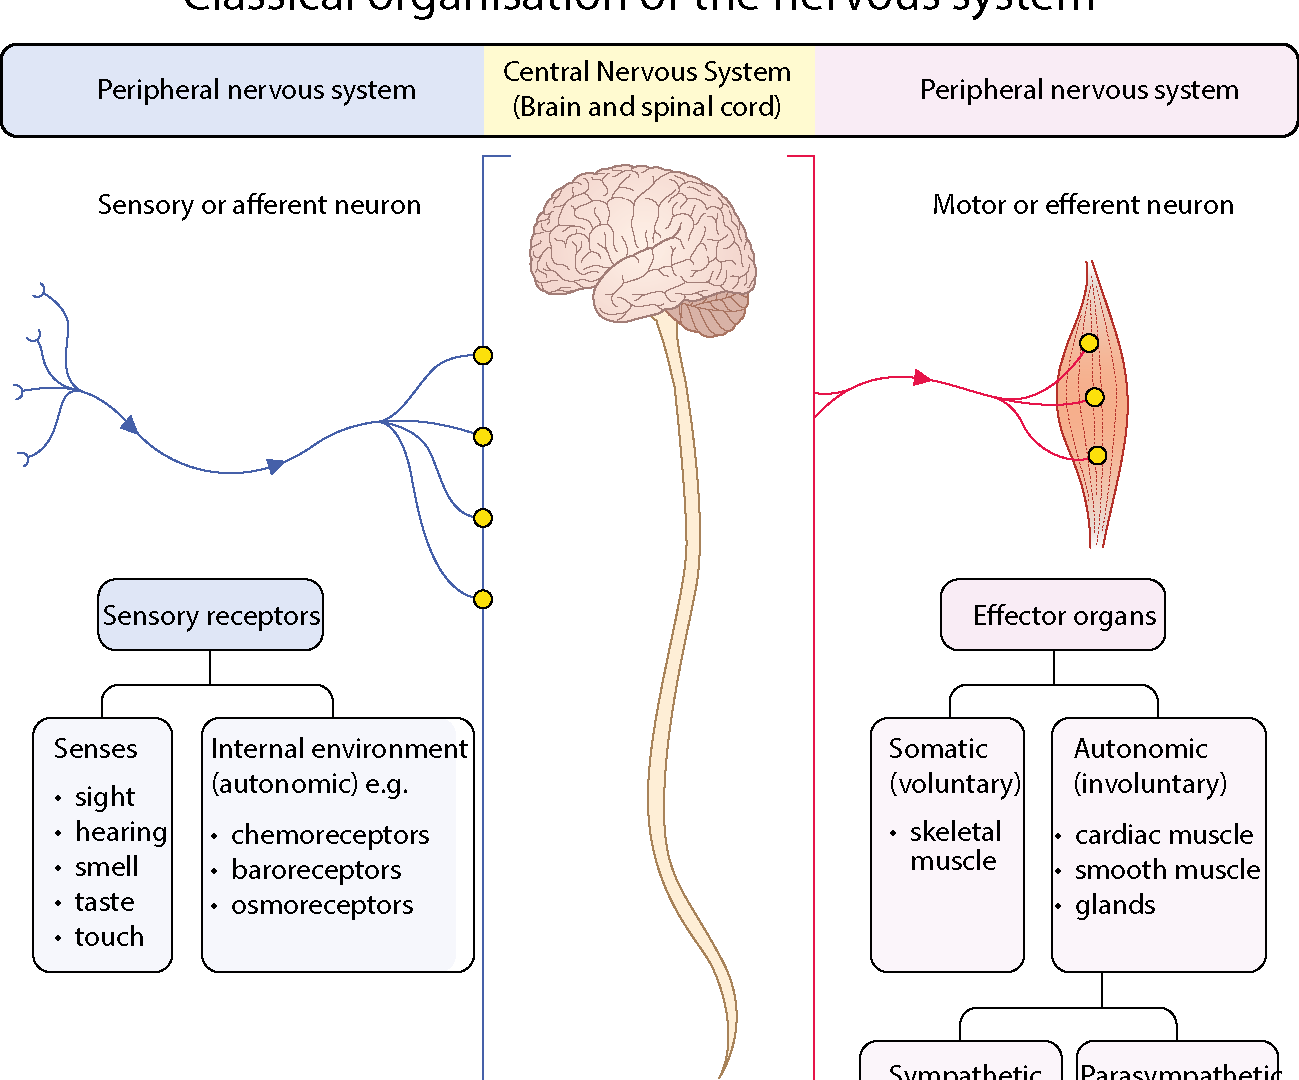 Classical organisation of the nervous system